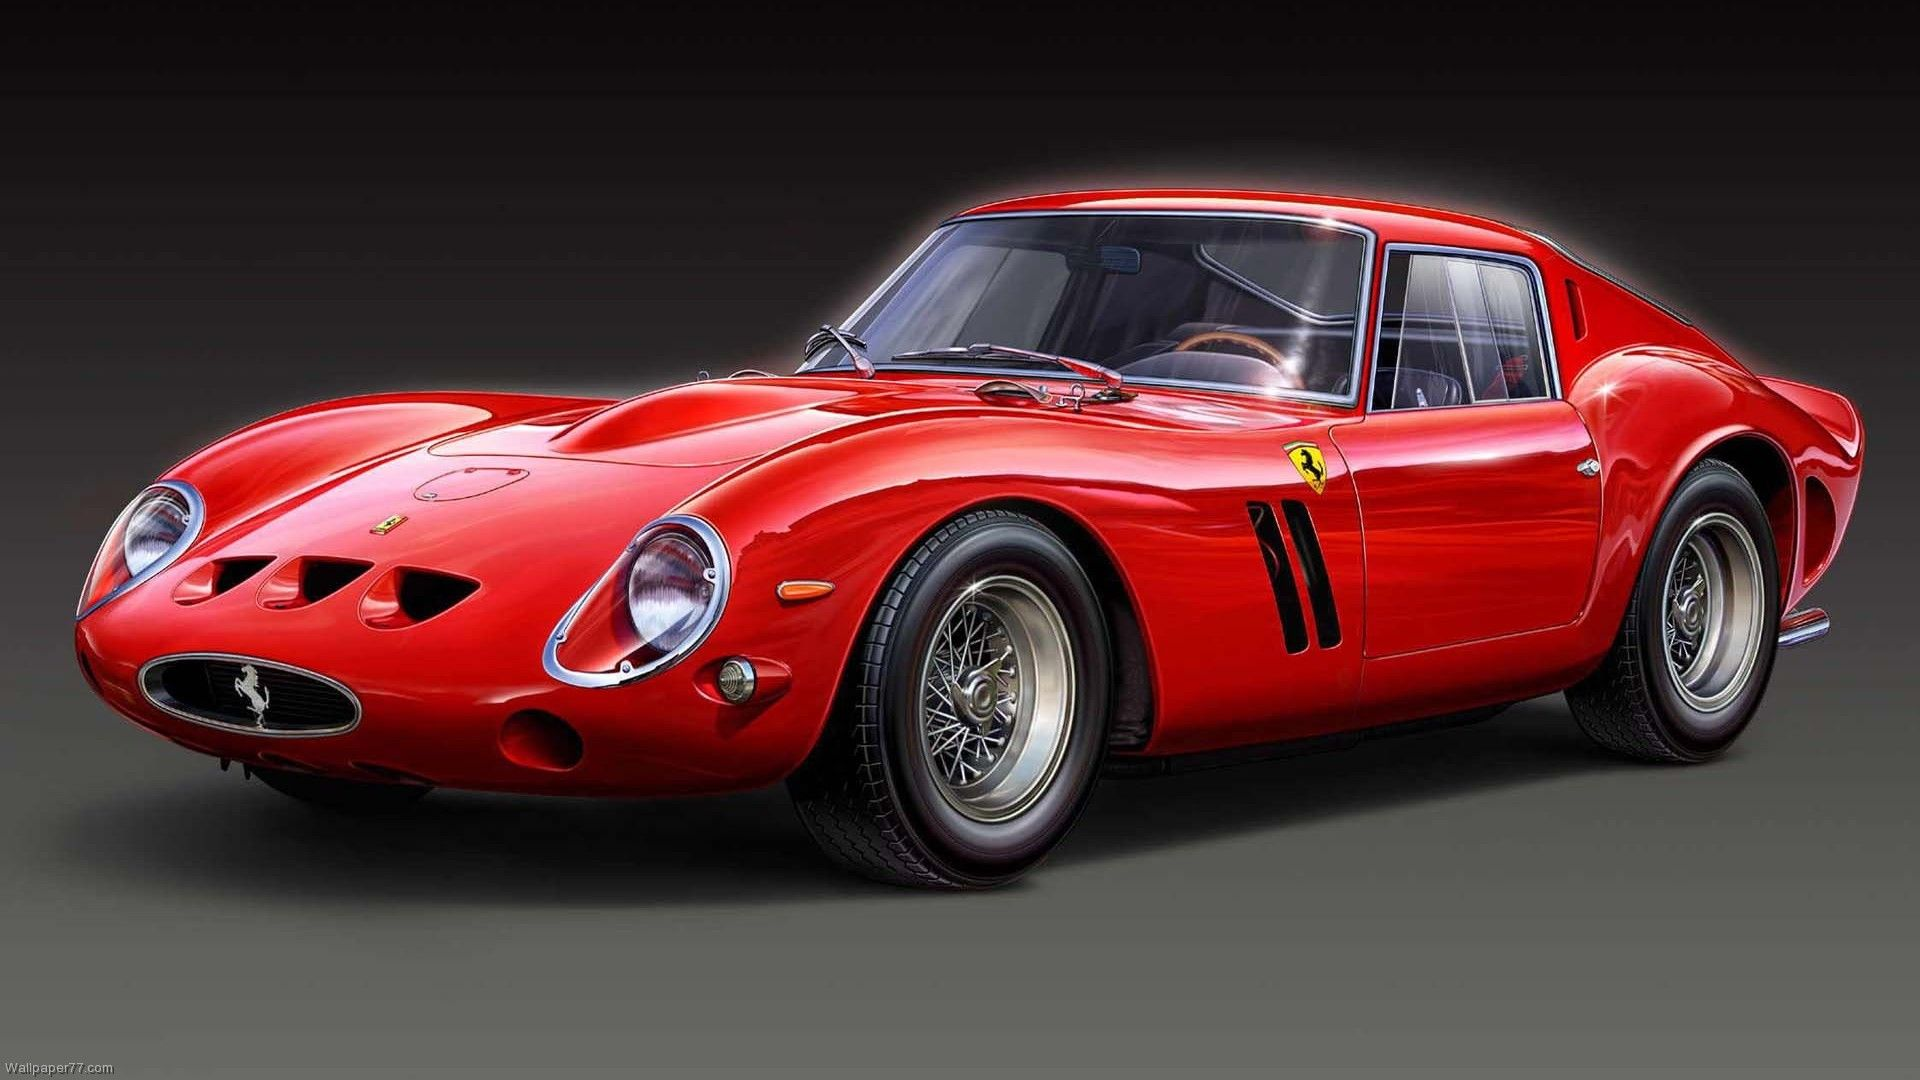 Chris Evans Ferrari 250 Gto Wallpaper With Images Sports Cars